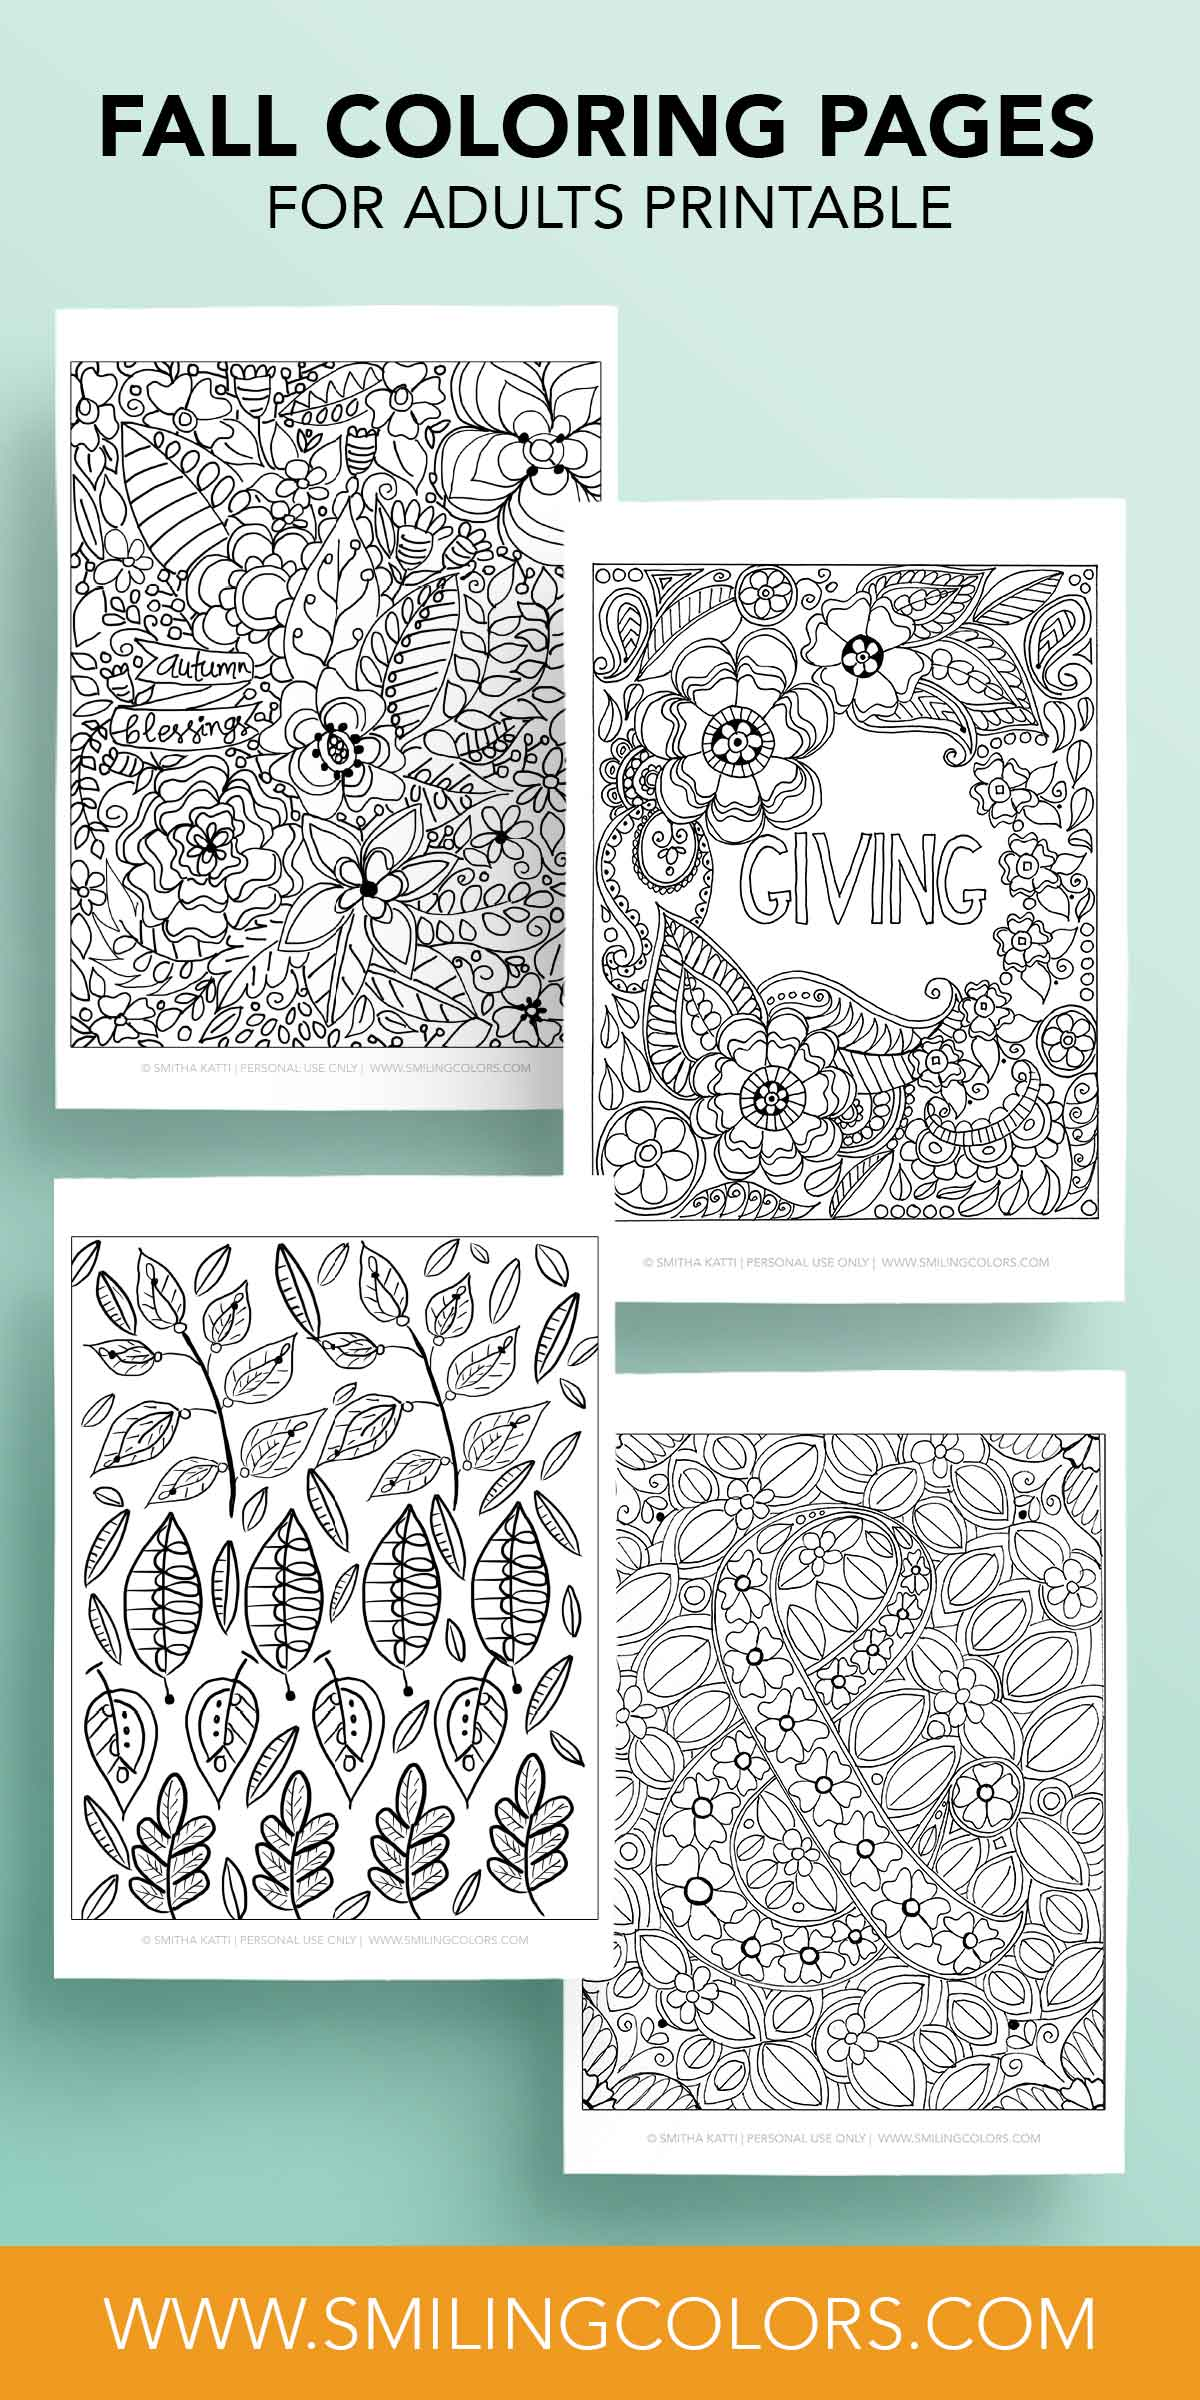 Fall Coloring Pages For Adults Printable Smiling Colors